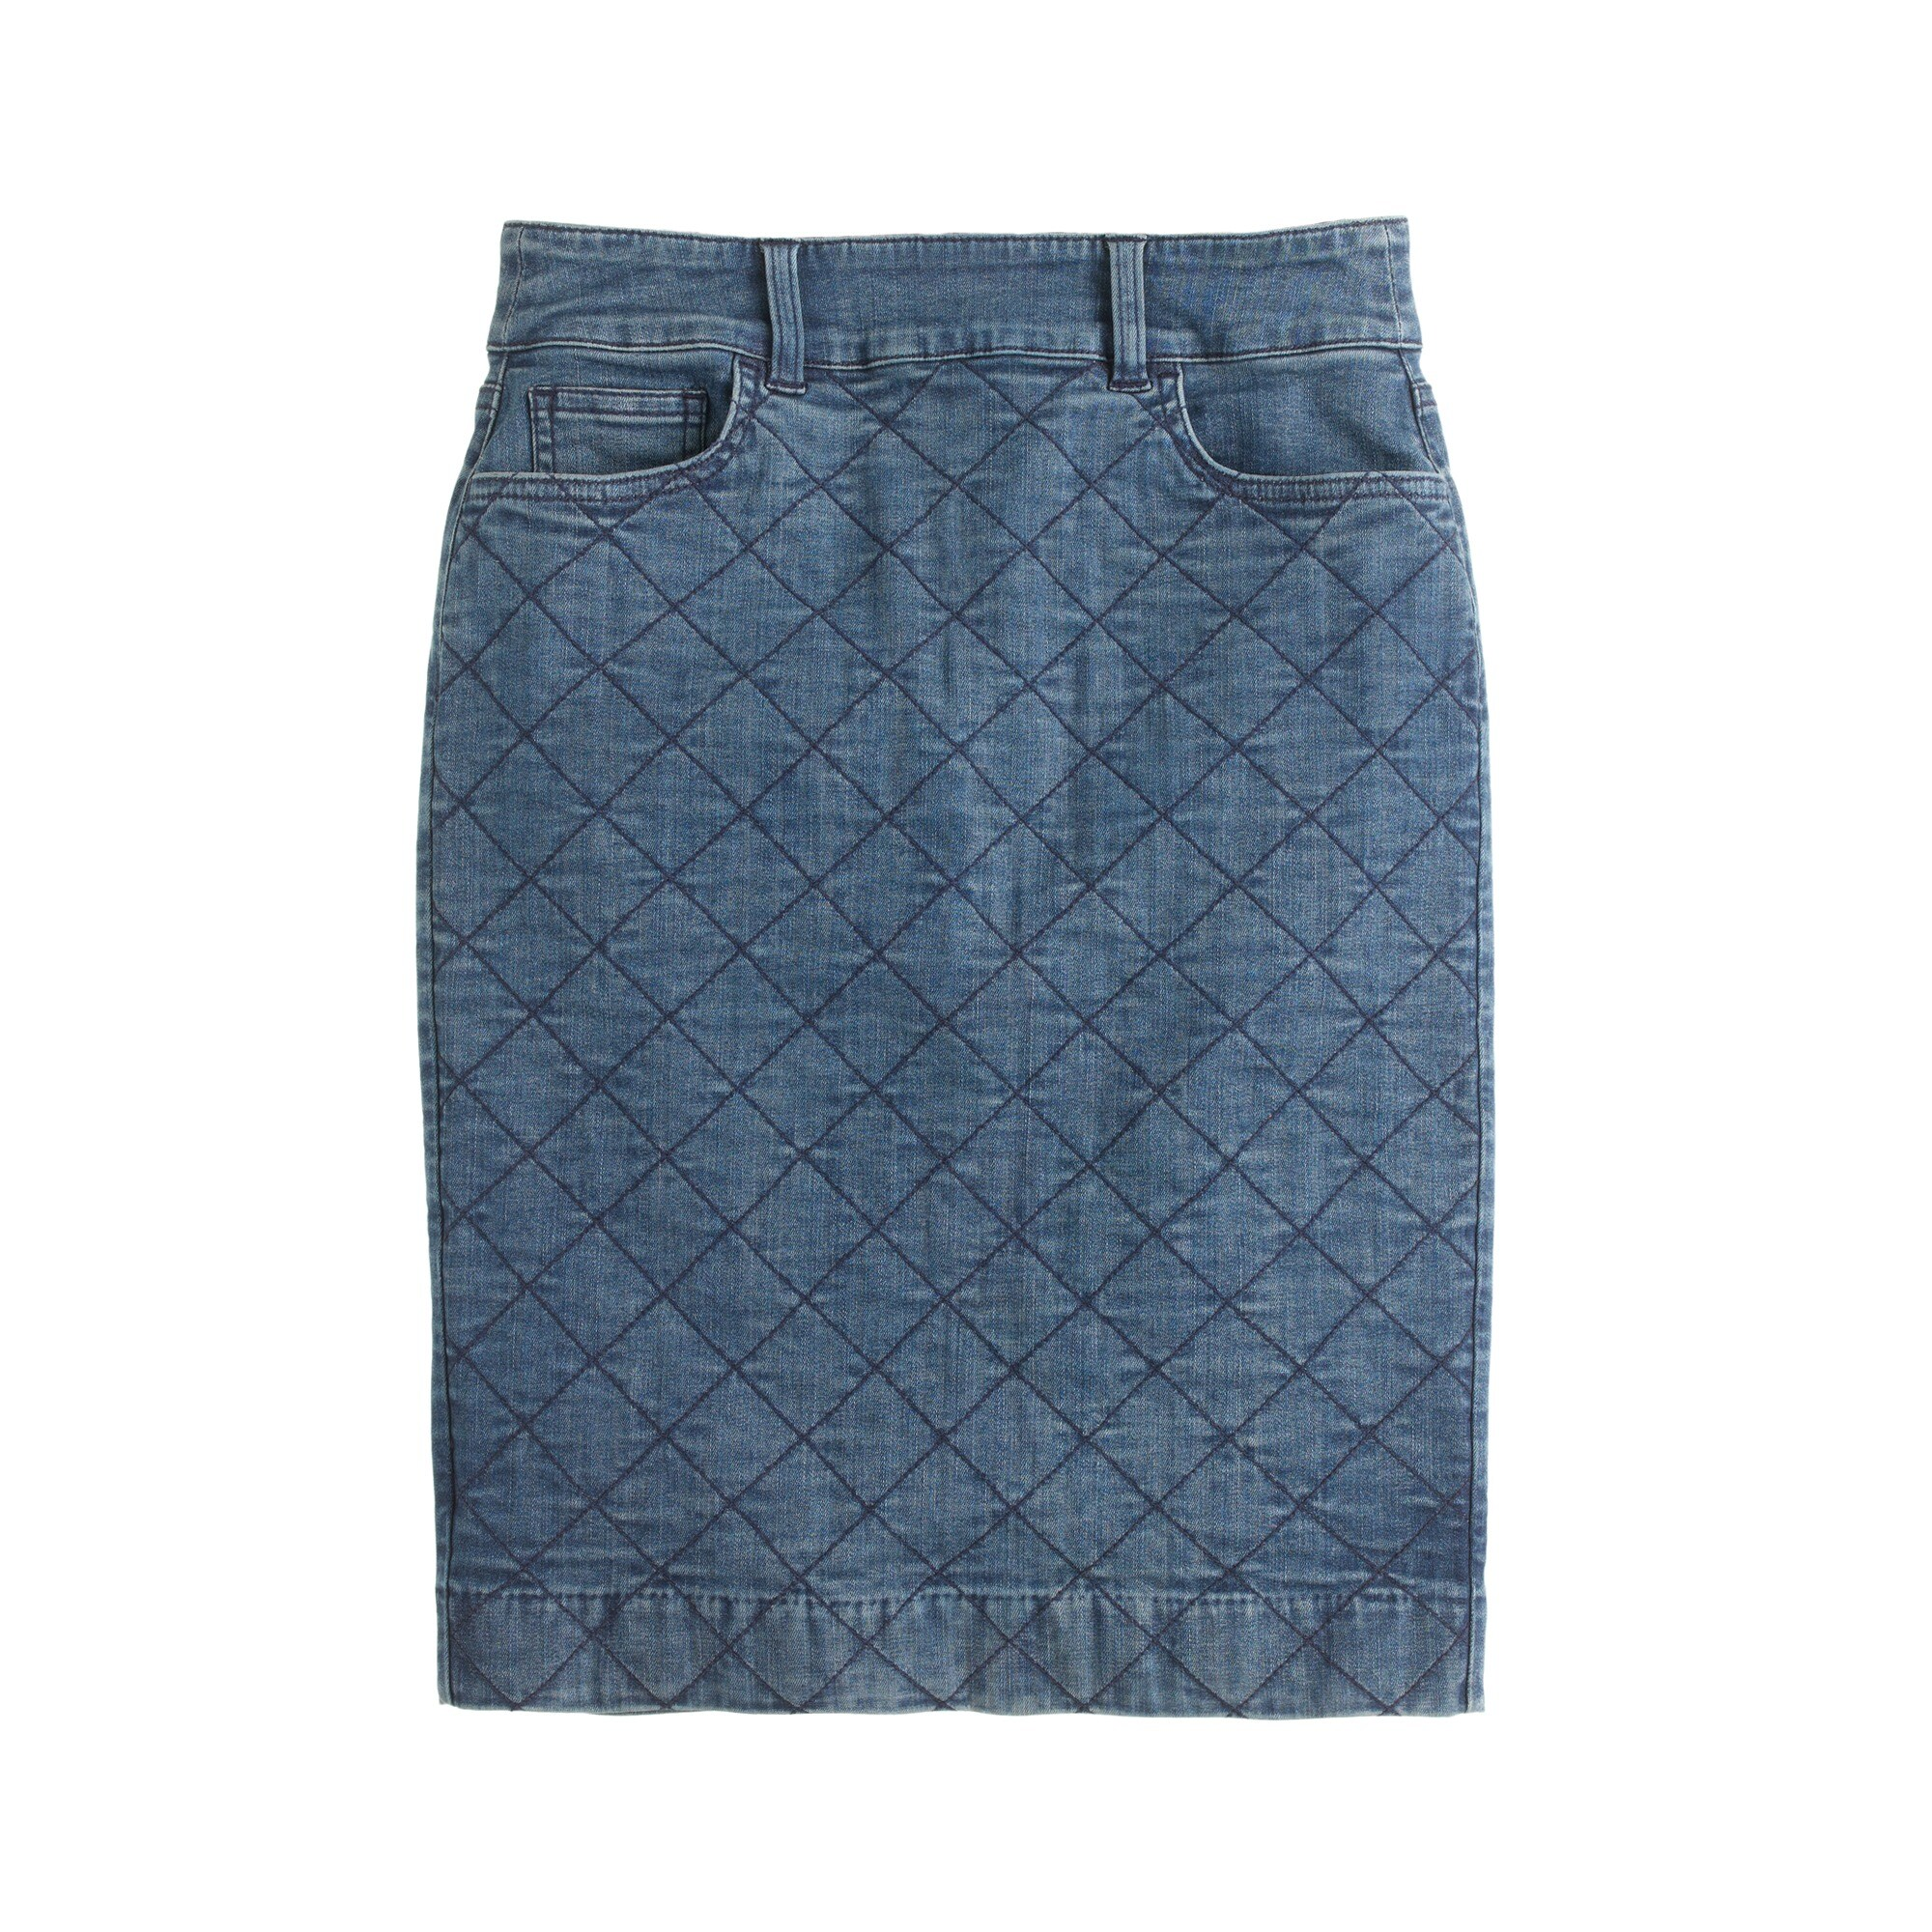 Quilted denim pencil skirt